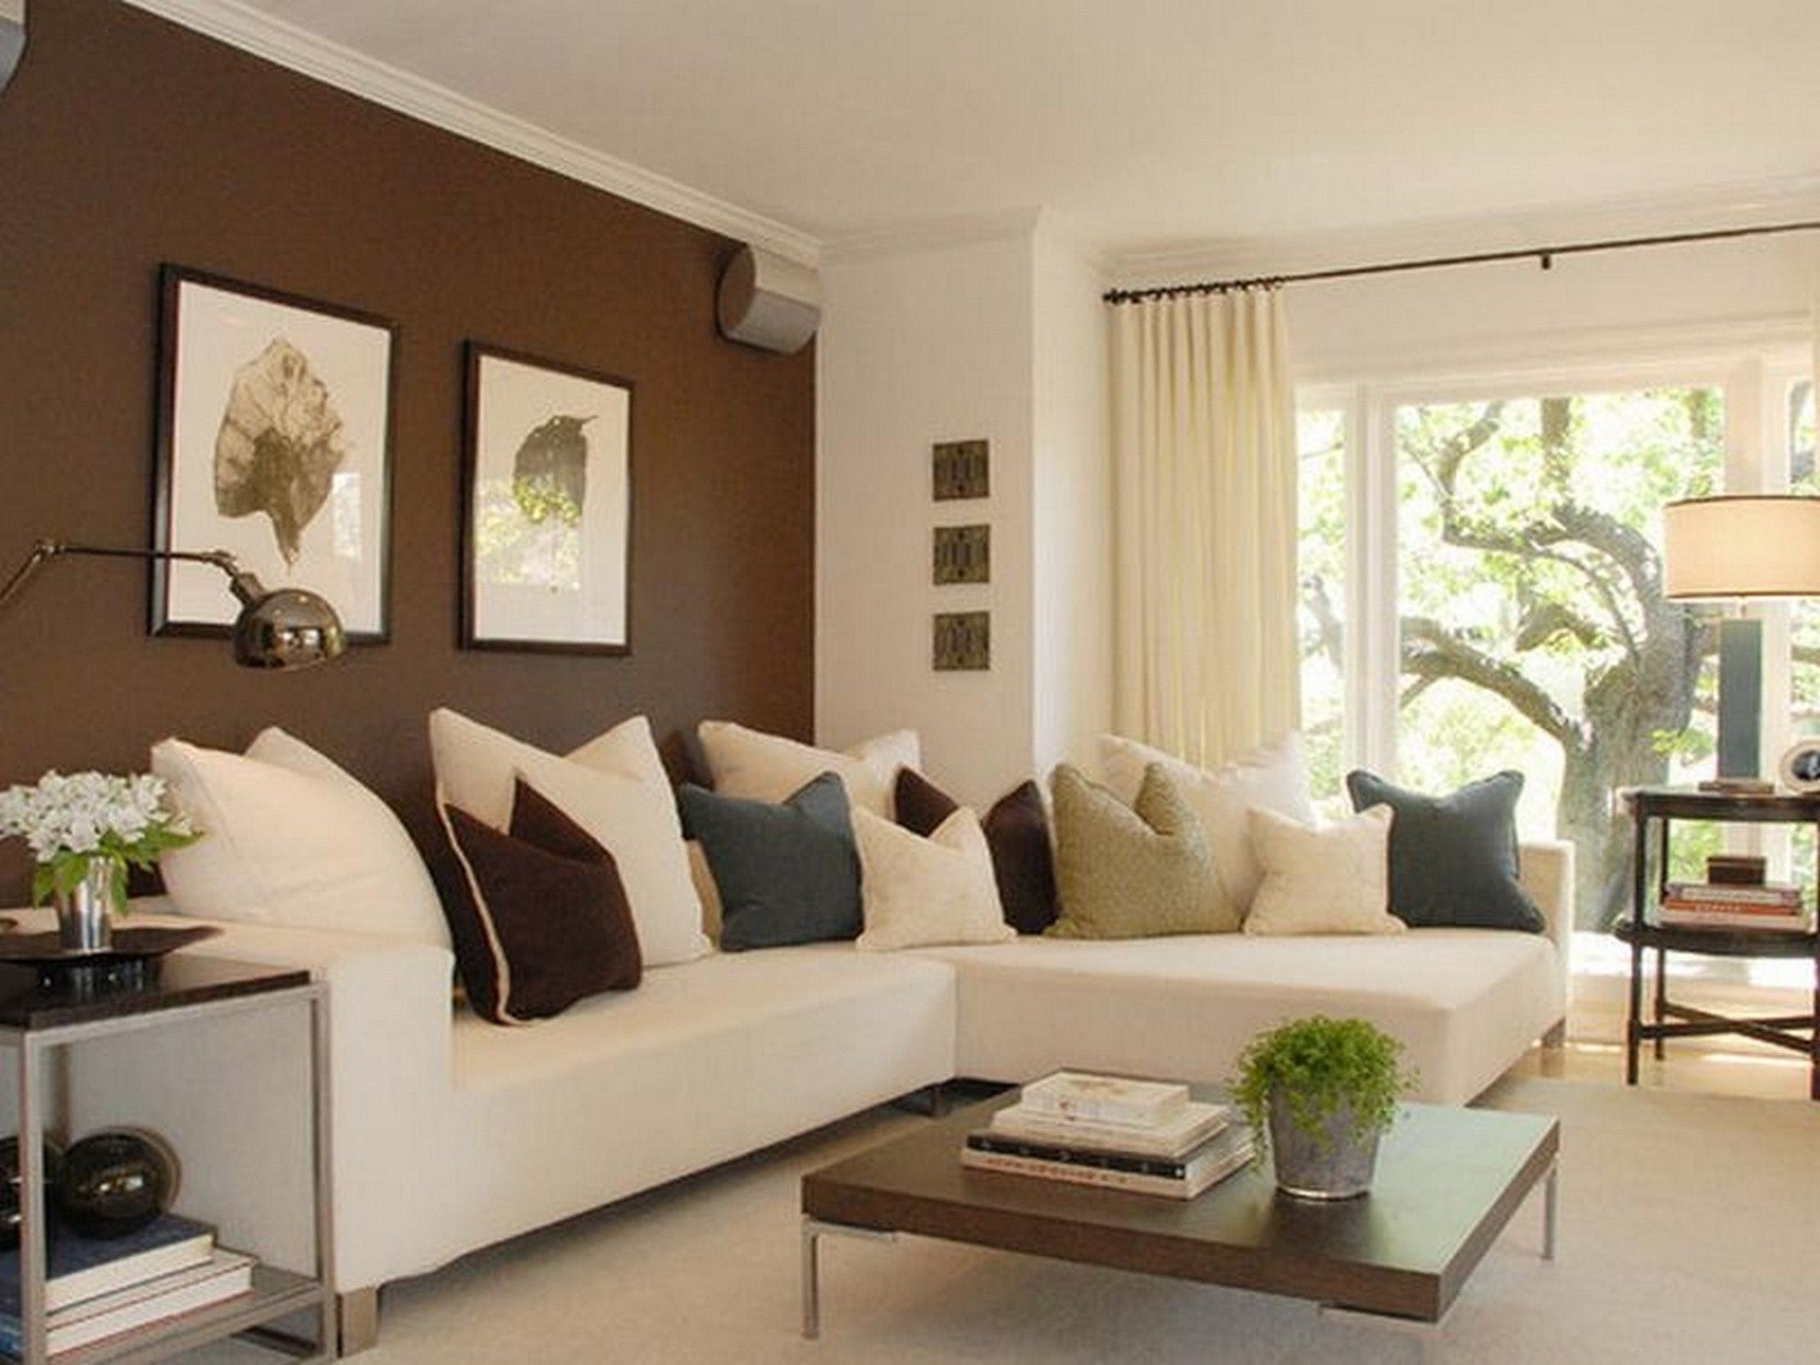 Sectional Sofas Decorating With Regard To Famous Living Room: Modern, Classic And Chic For Living Room Ideas With (View 11 of 15)